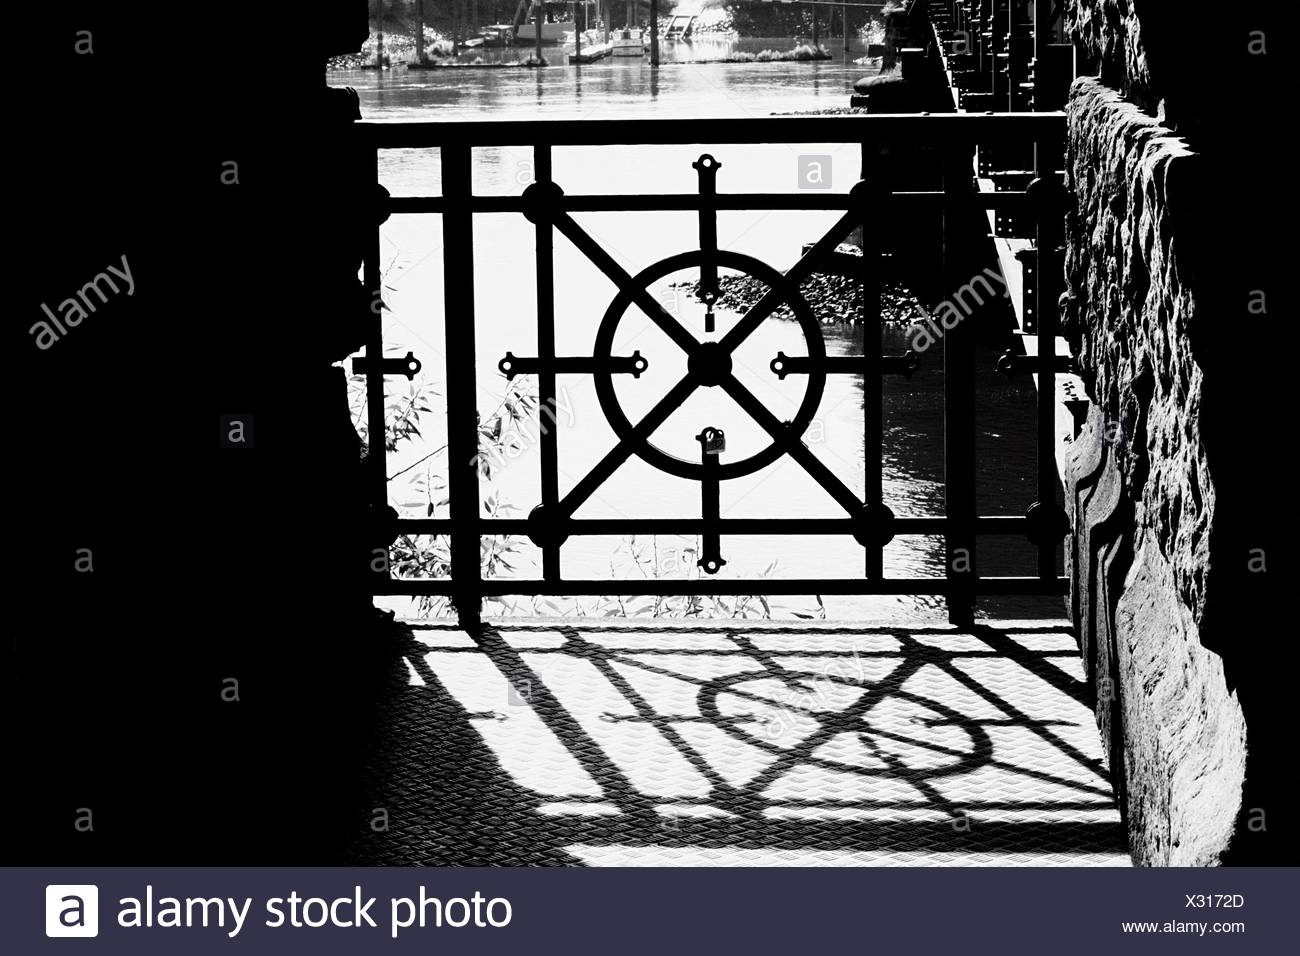 Metal Grate Against Elbe River On Sunny Day - Stock Image